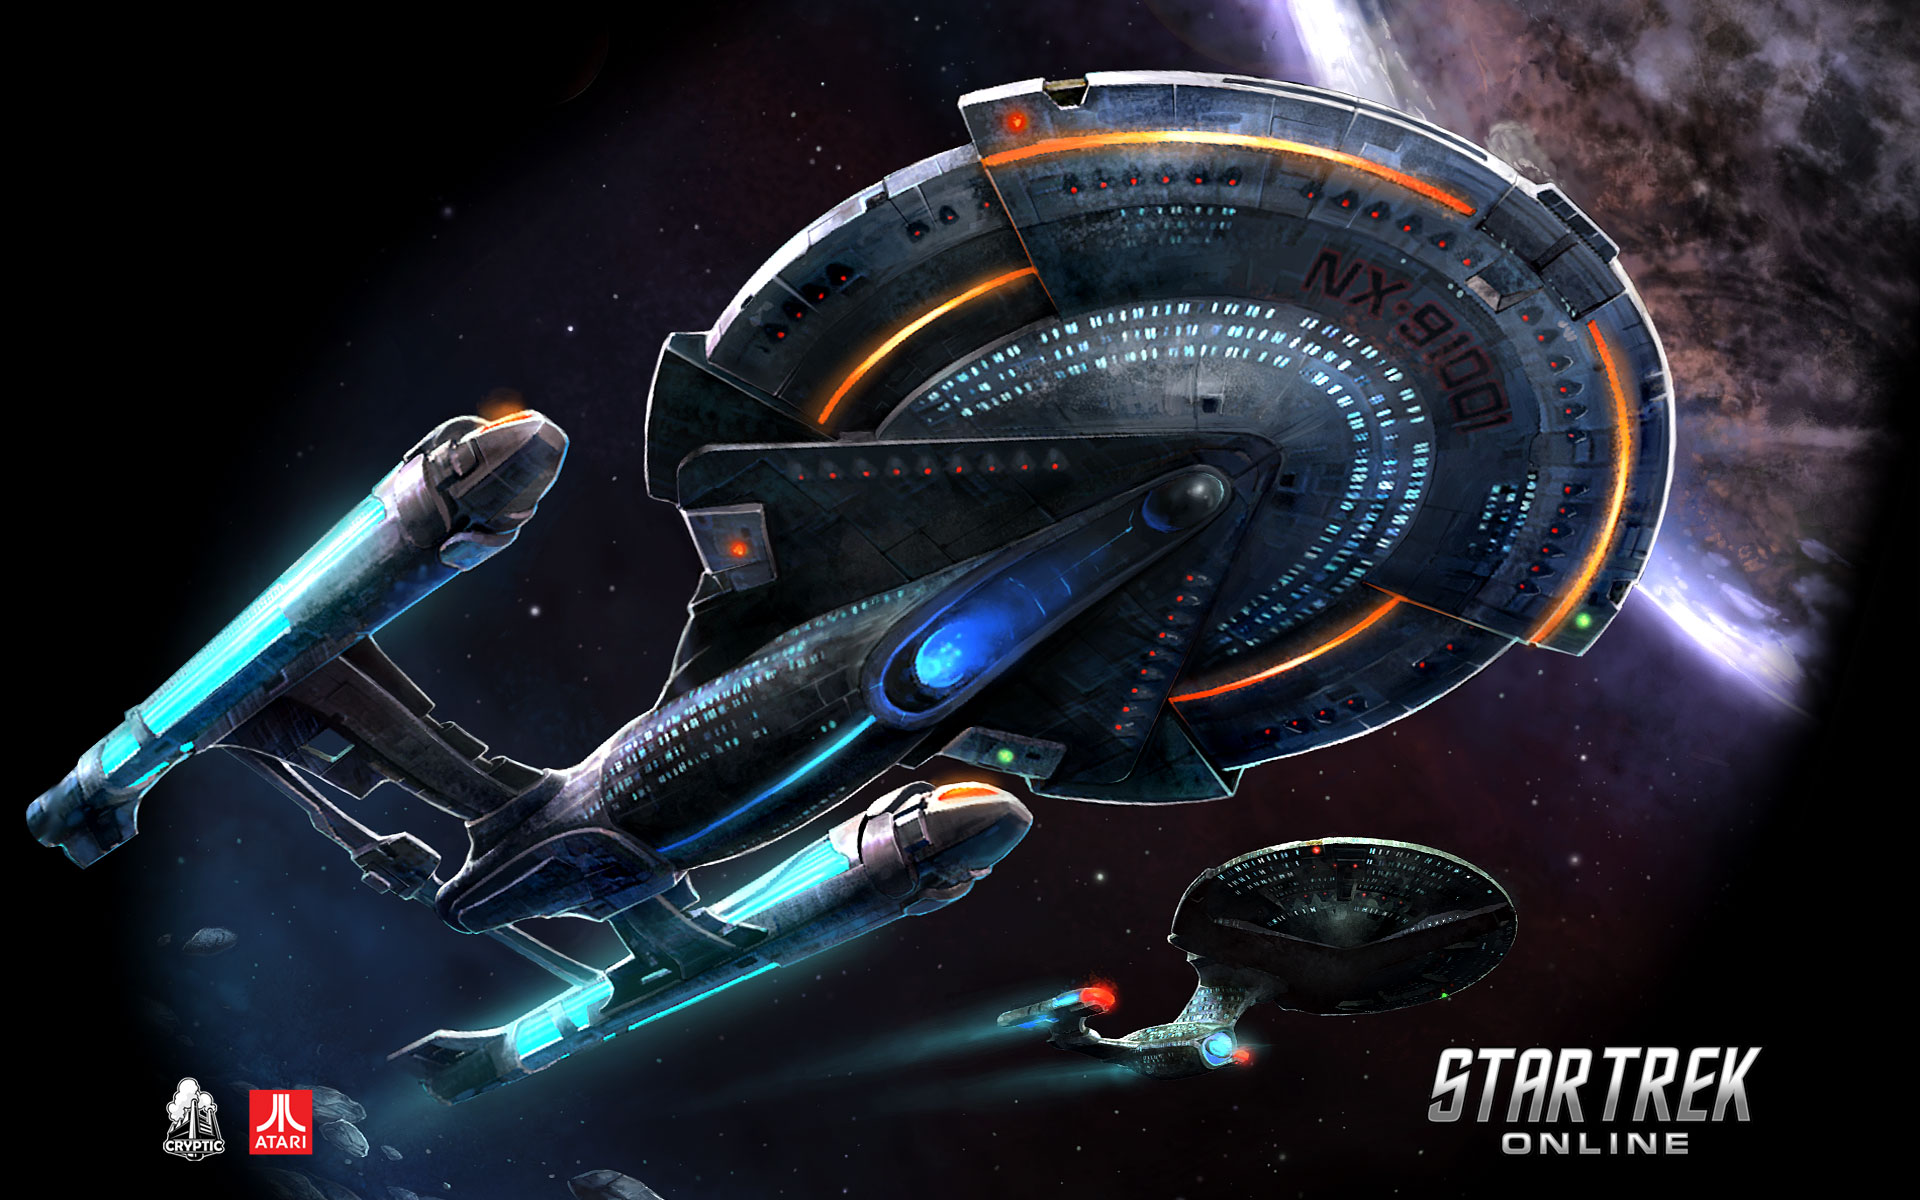 star trek online chatting What chat channels are out this is the official subreddit for the star trek online what are you favorite chat channels and how to do you talk to a specific.